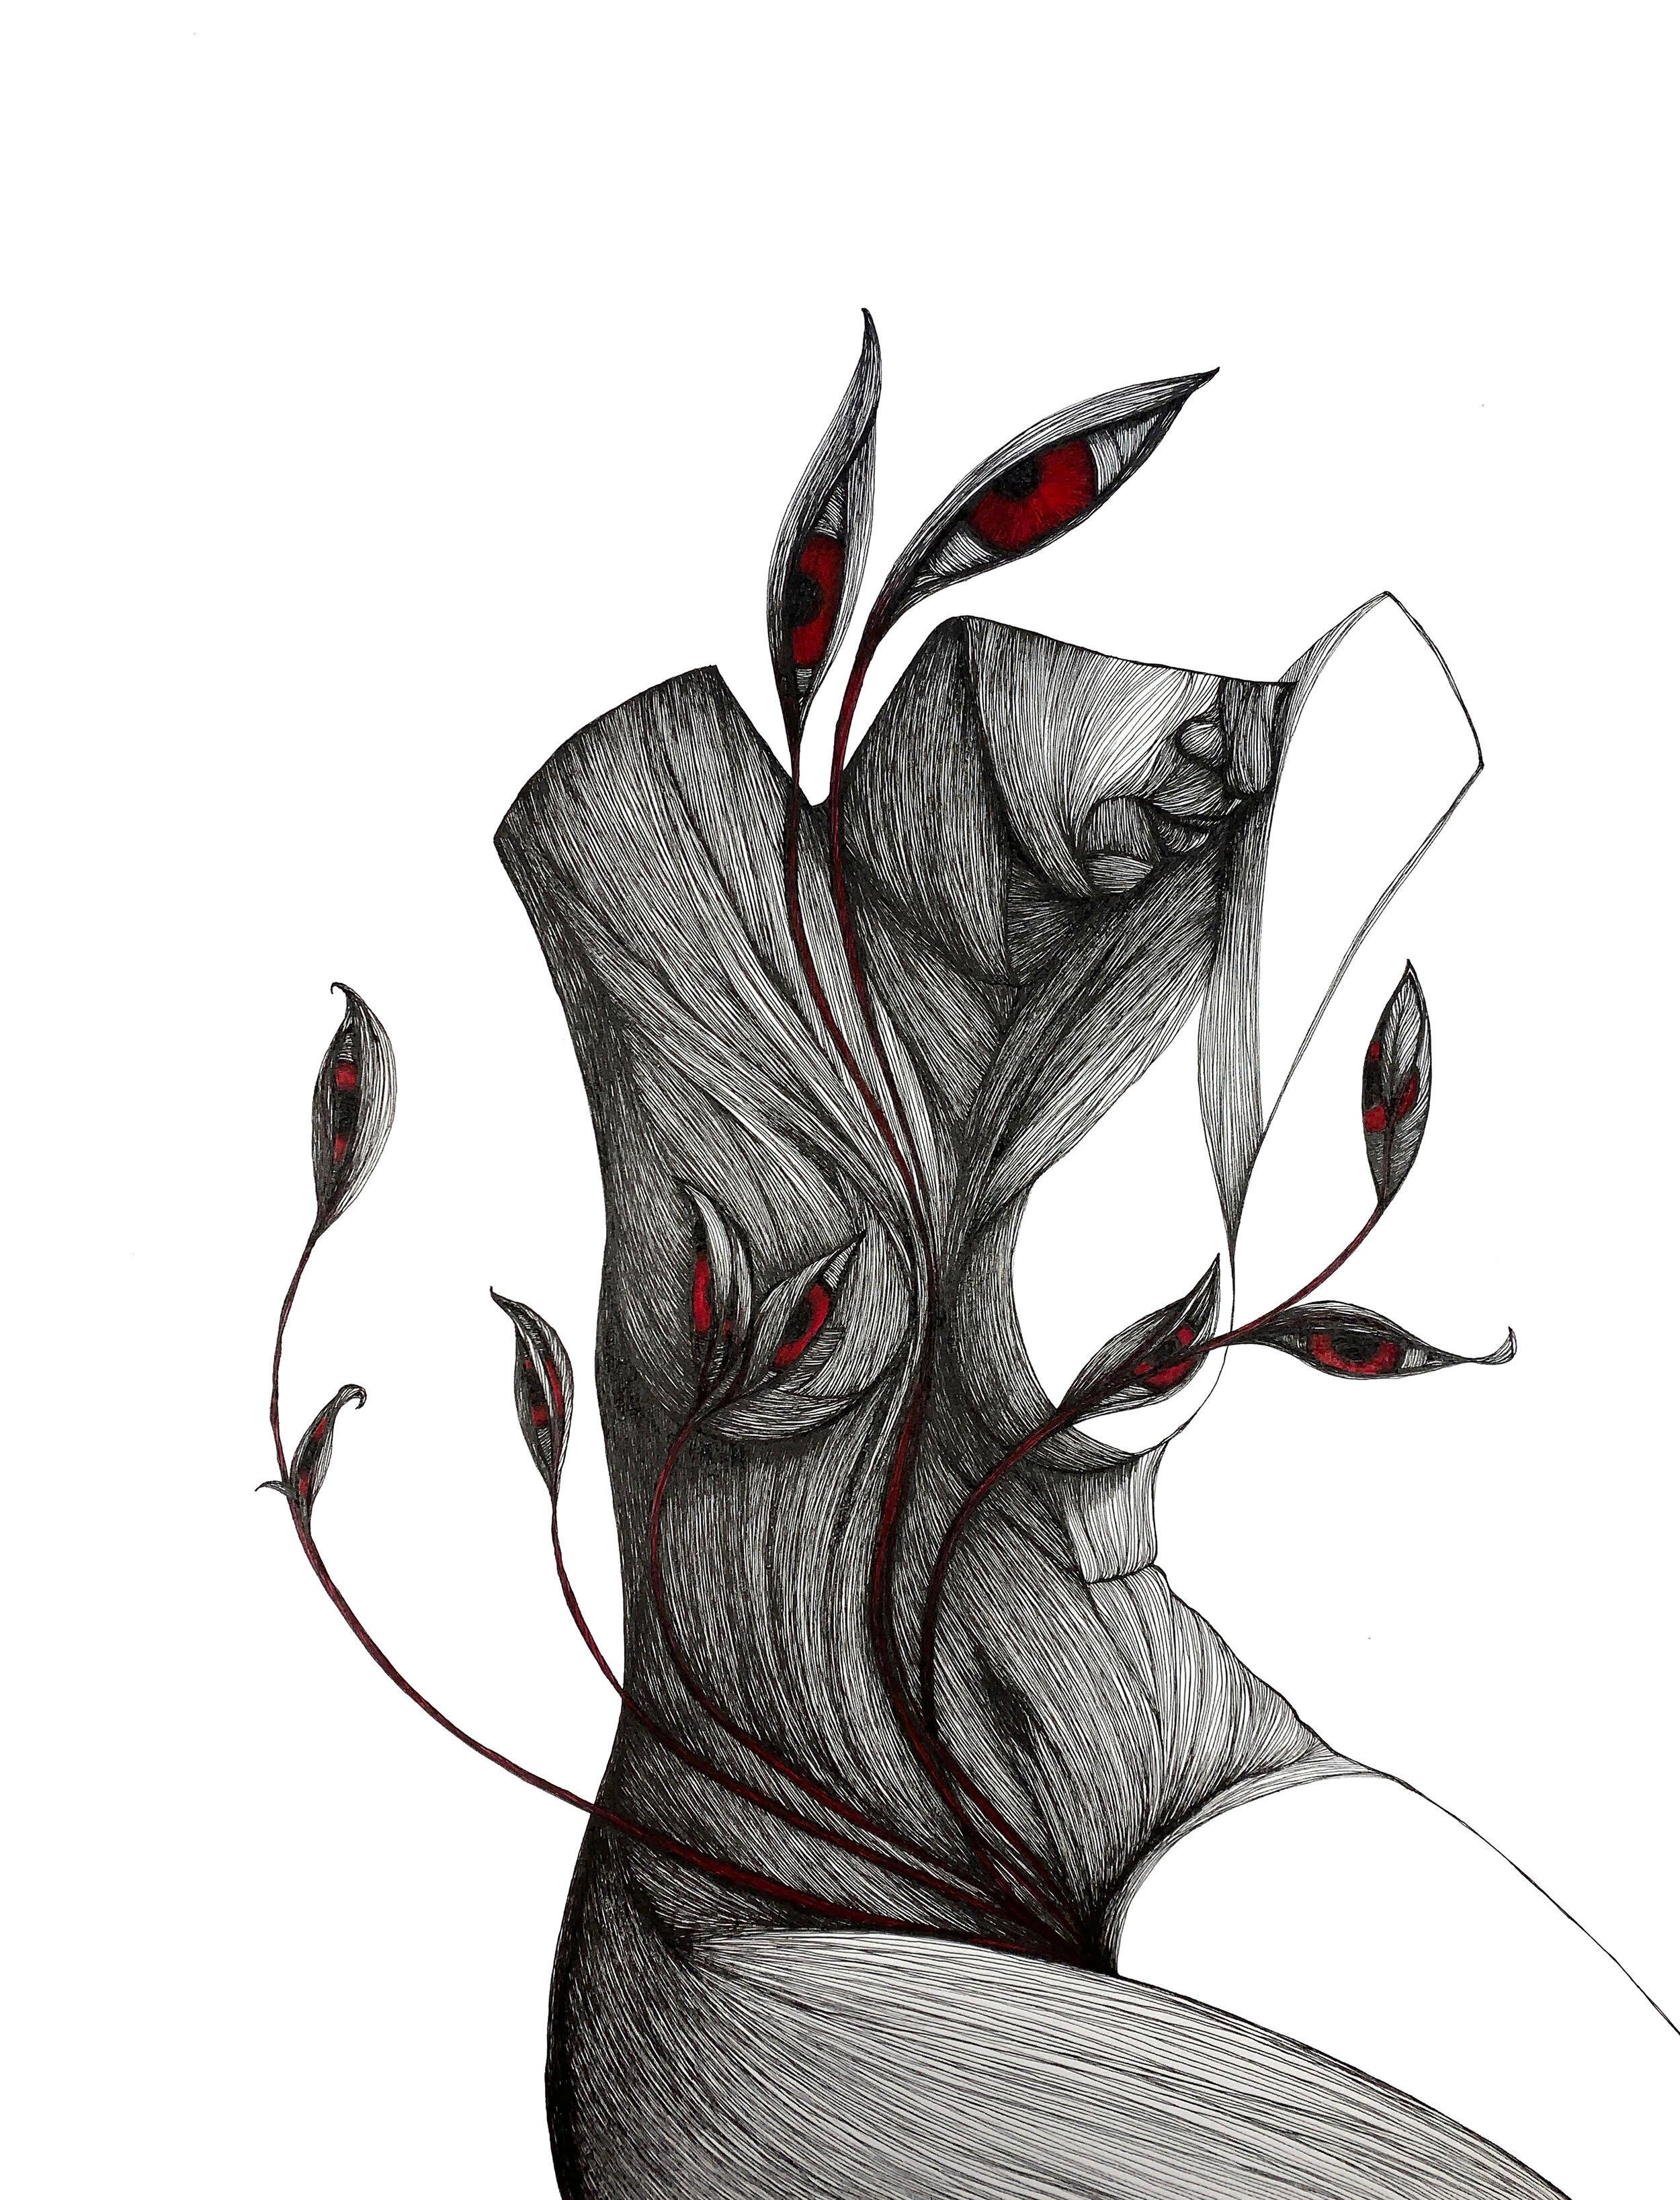 Mother - Pen, Ink, Black White Contemporary Surrealistic Drawing of Female Form